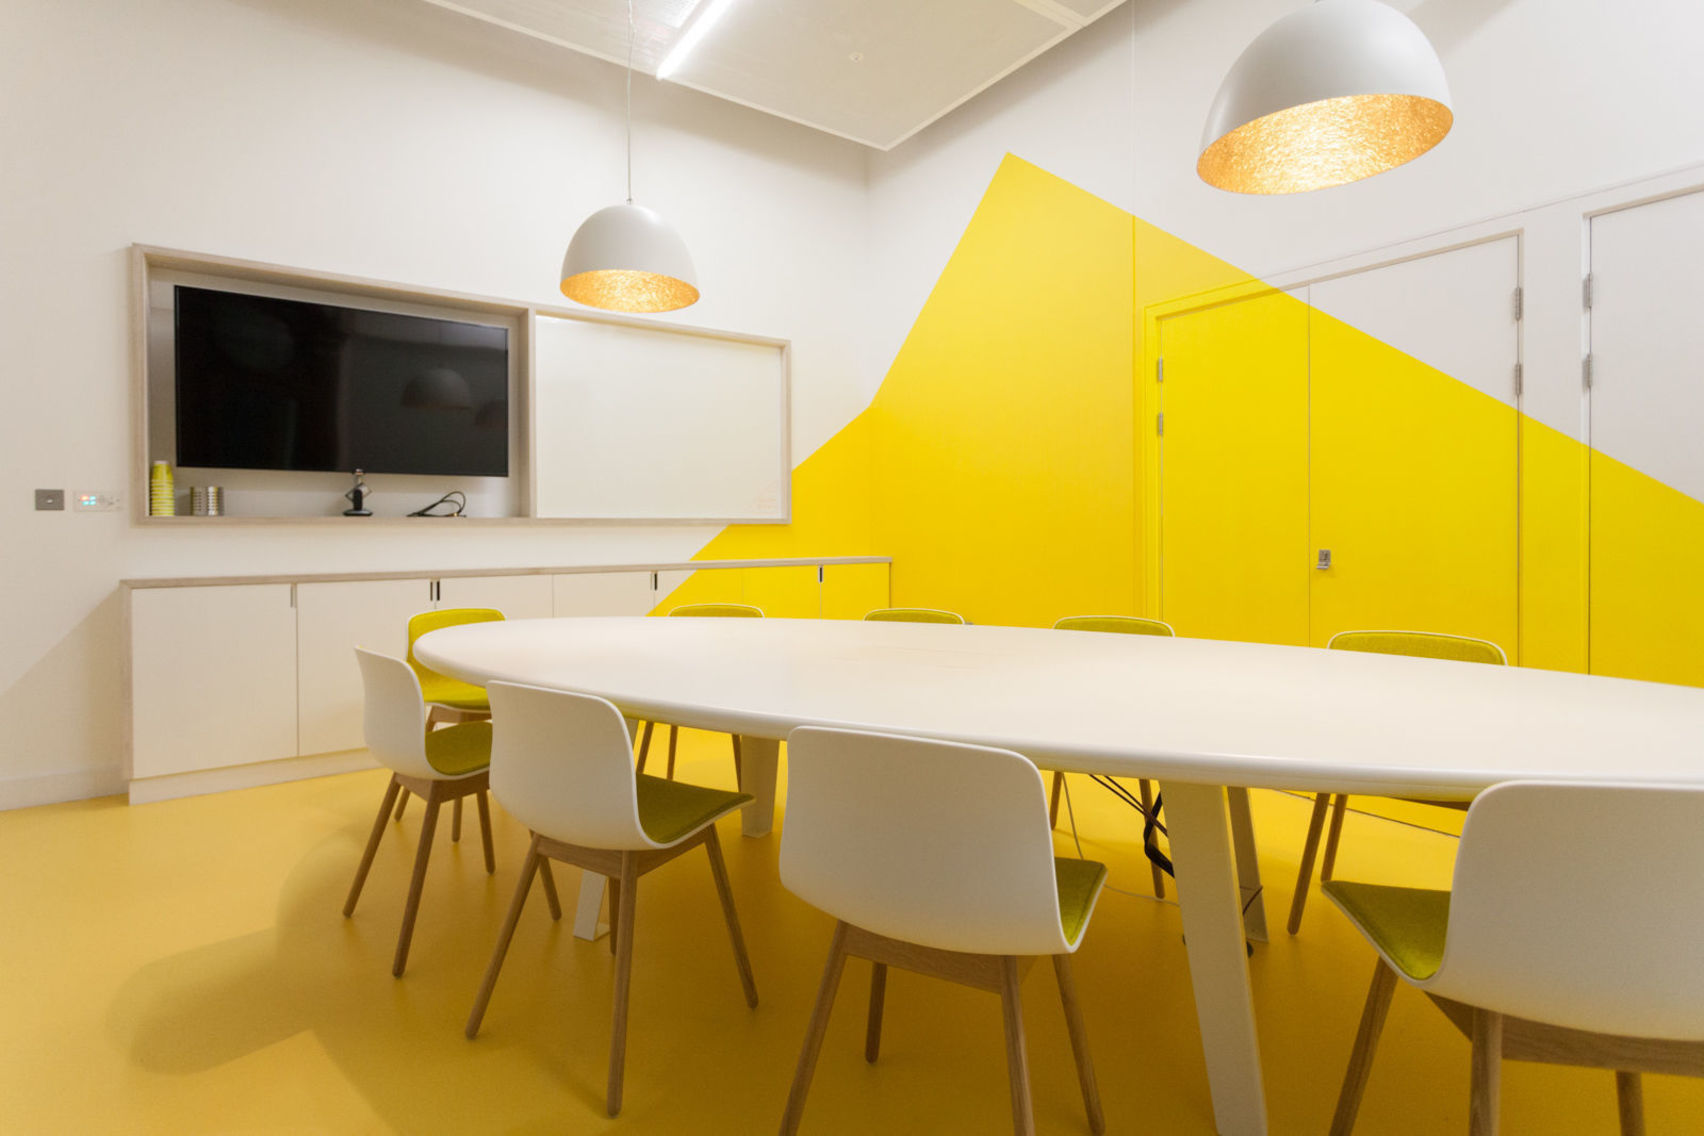 Unusual venues in london for hire from headbox for Office design yellow